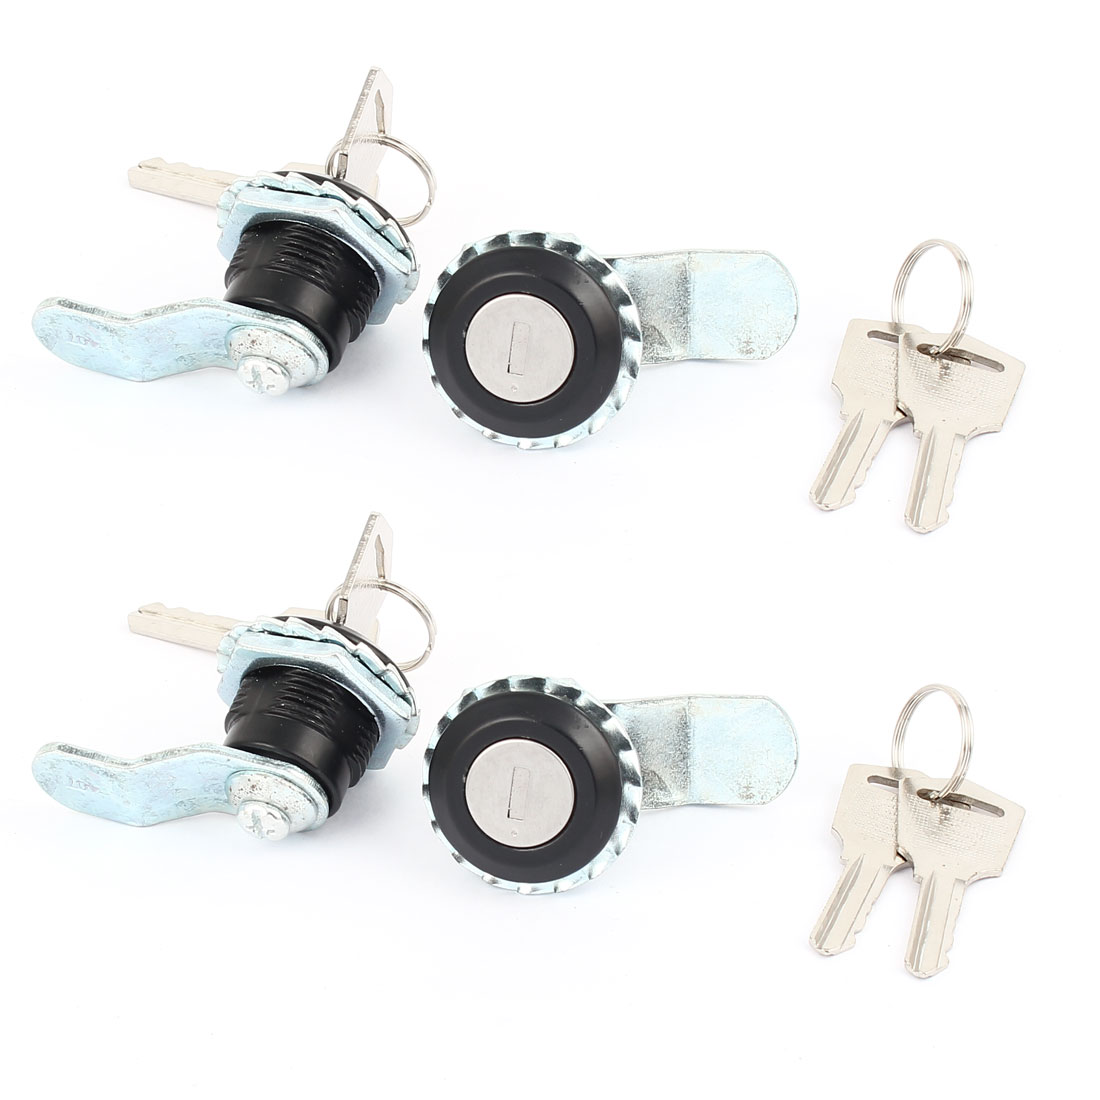 4 Pcs Cam Lock for Security Door Cabinet Drawer Cupboard Locker with 2 Keys